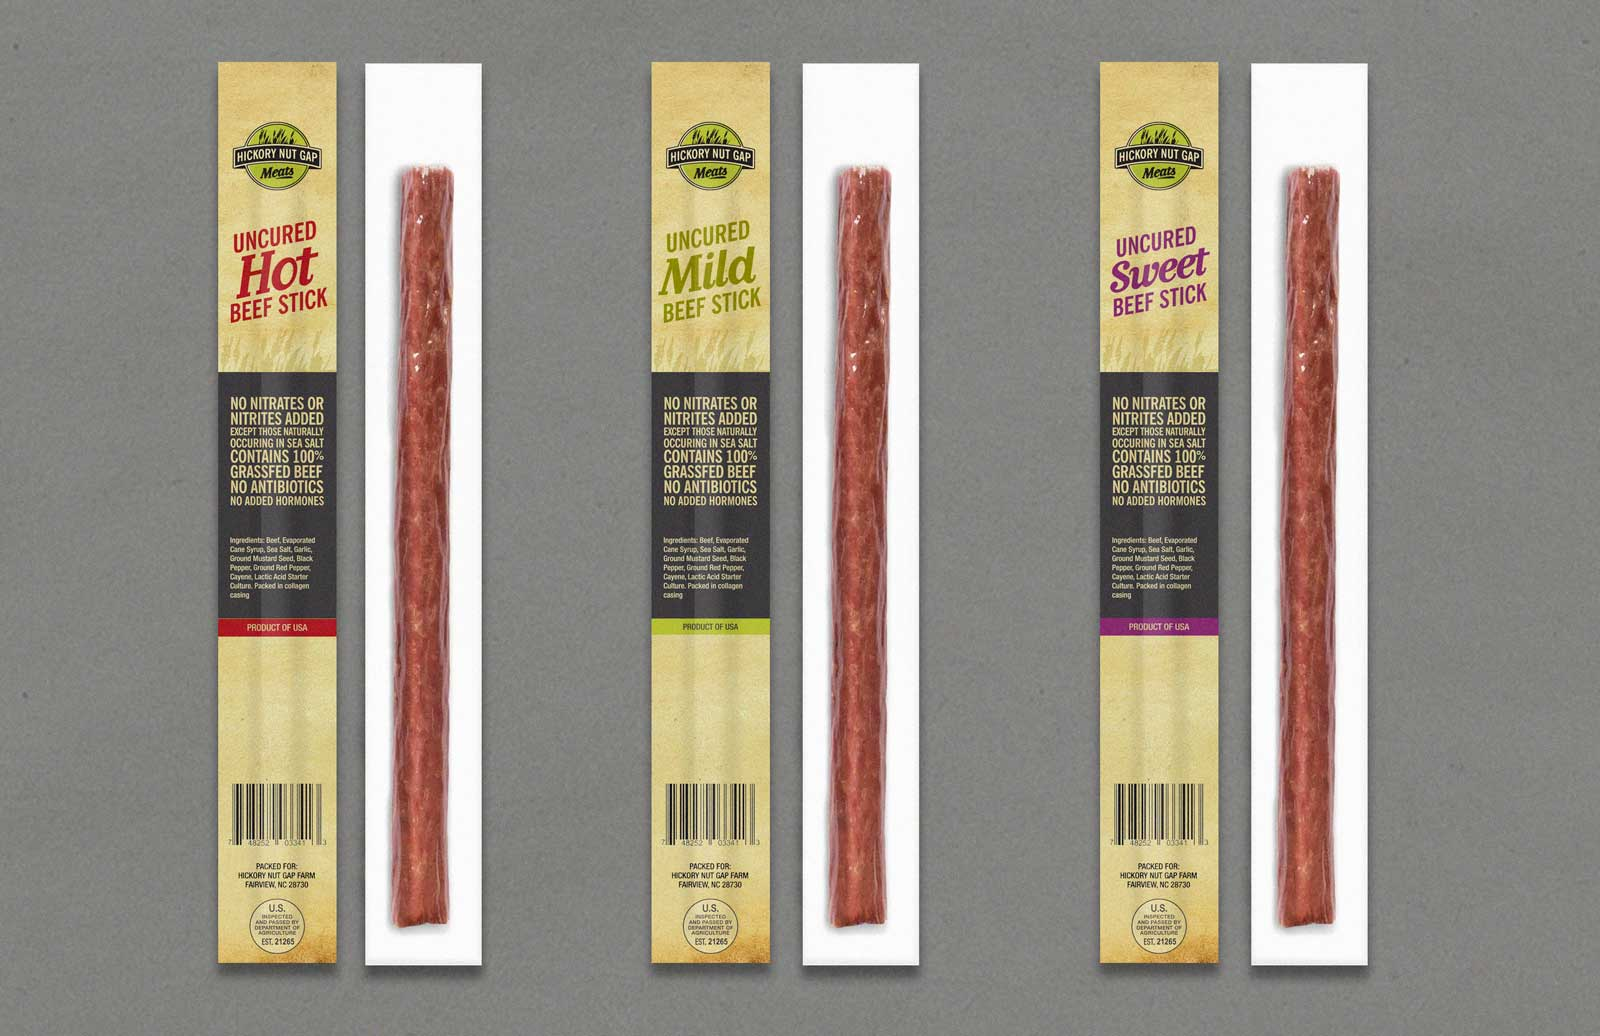 Hickory Nut Gap Meats Beef Sticks (Hot, Mild and Sweet) shown on gray background.